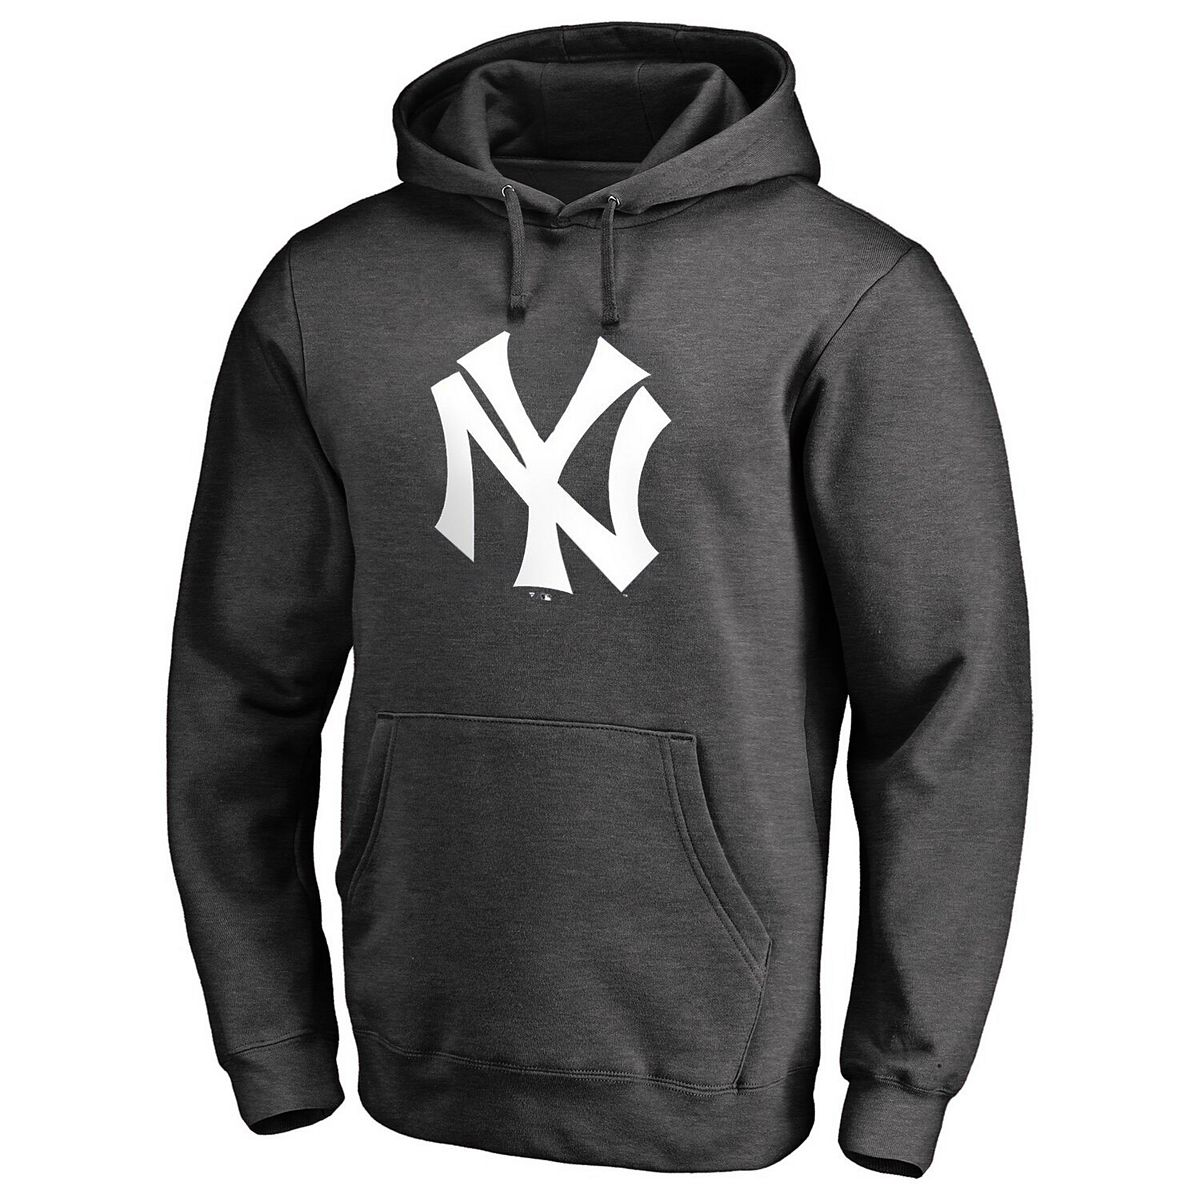 New York Yankees Fanatics Branded Cooperstown Collection Huntington Pullover Hoodie - Gray UCGgW